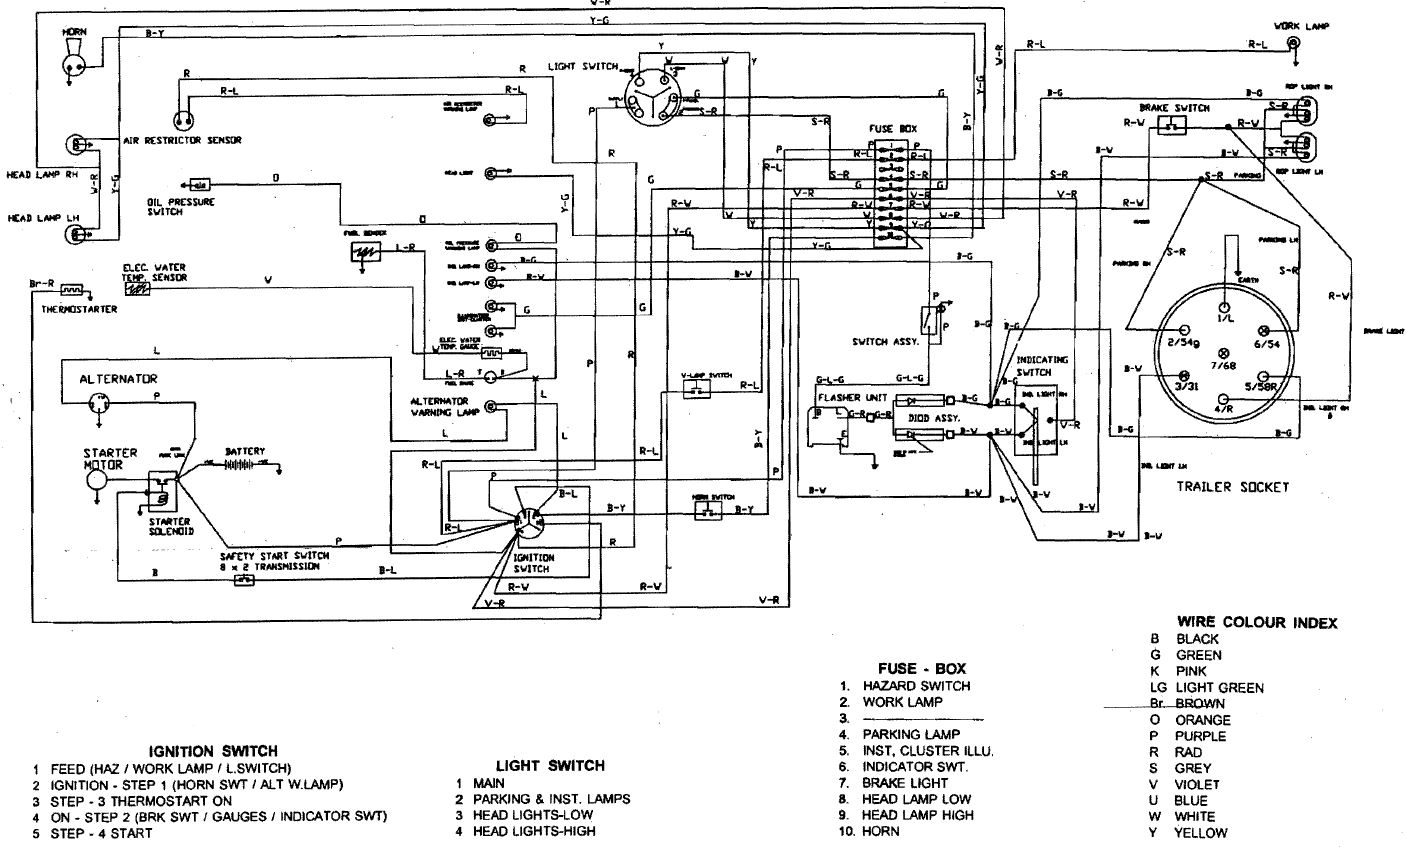 Ignition switch wiring diagramTractorByNet